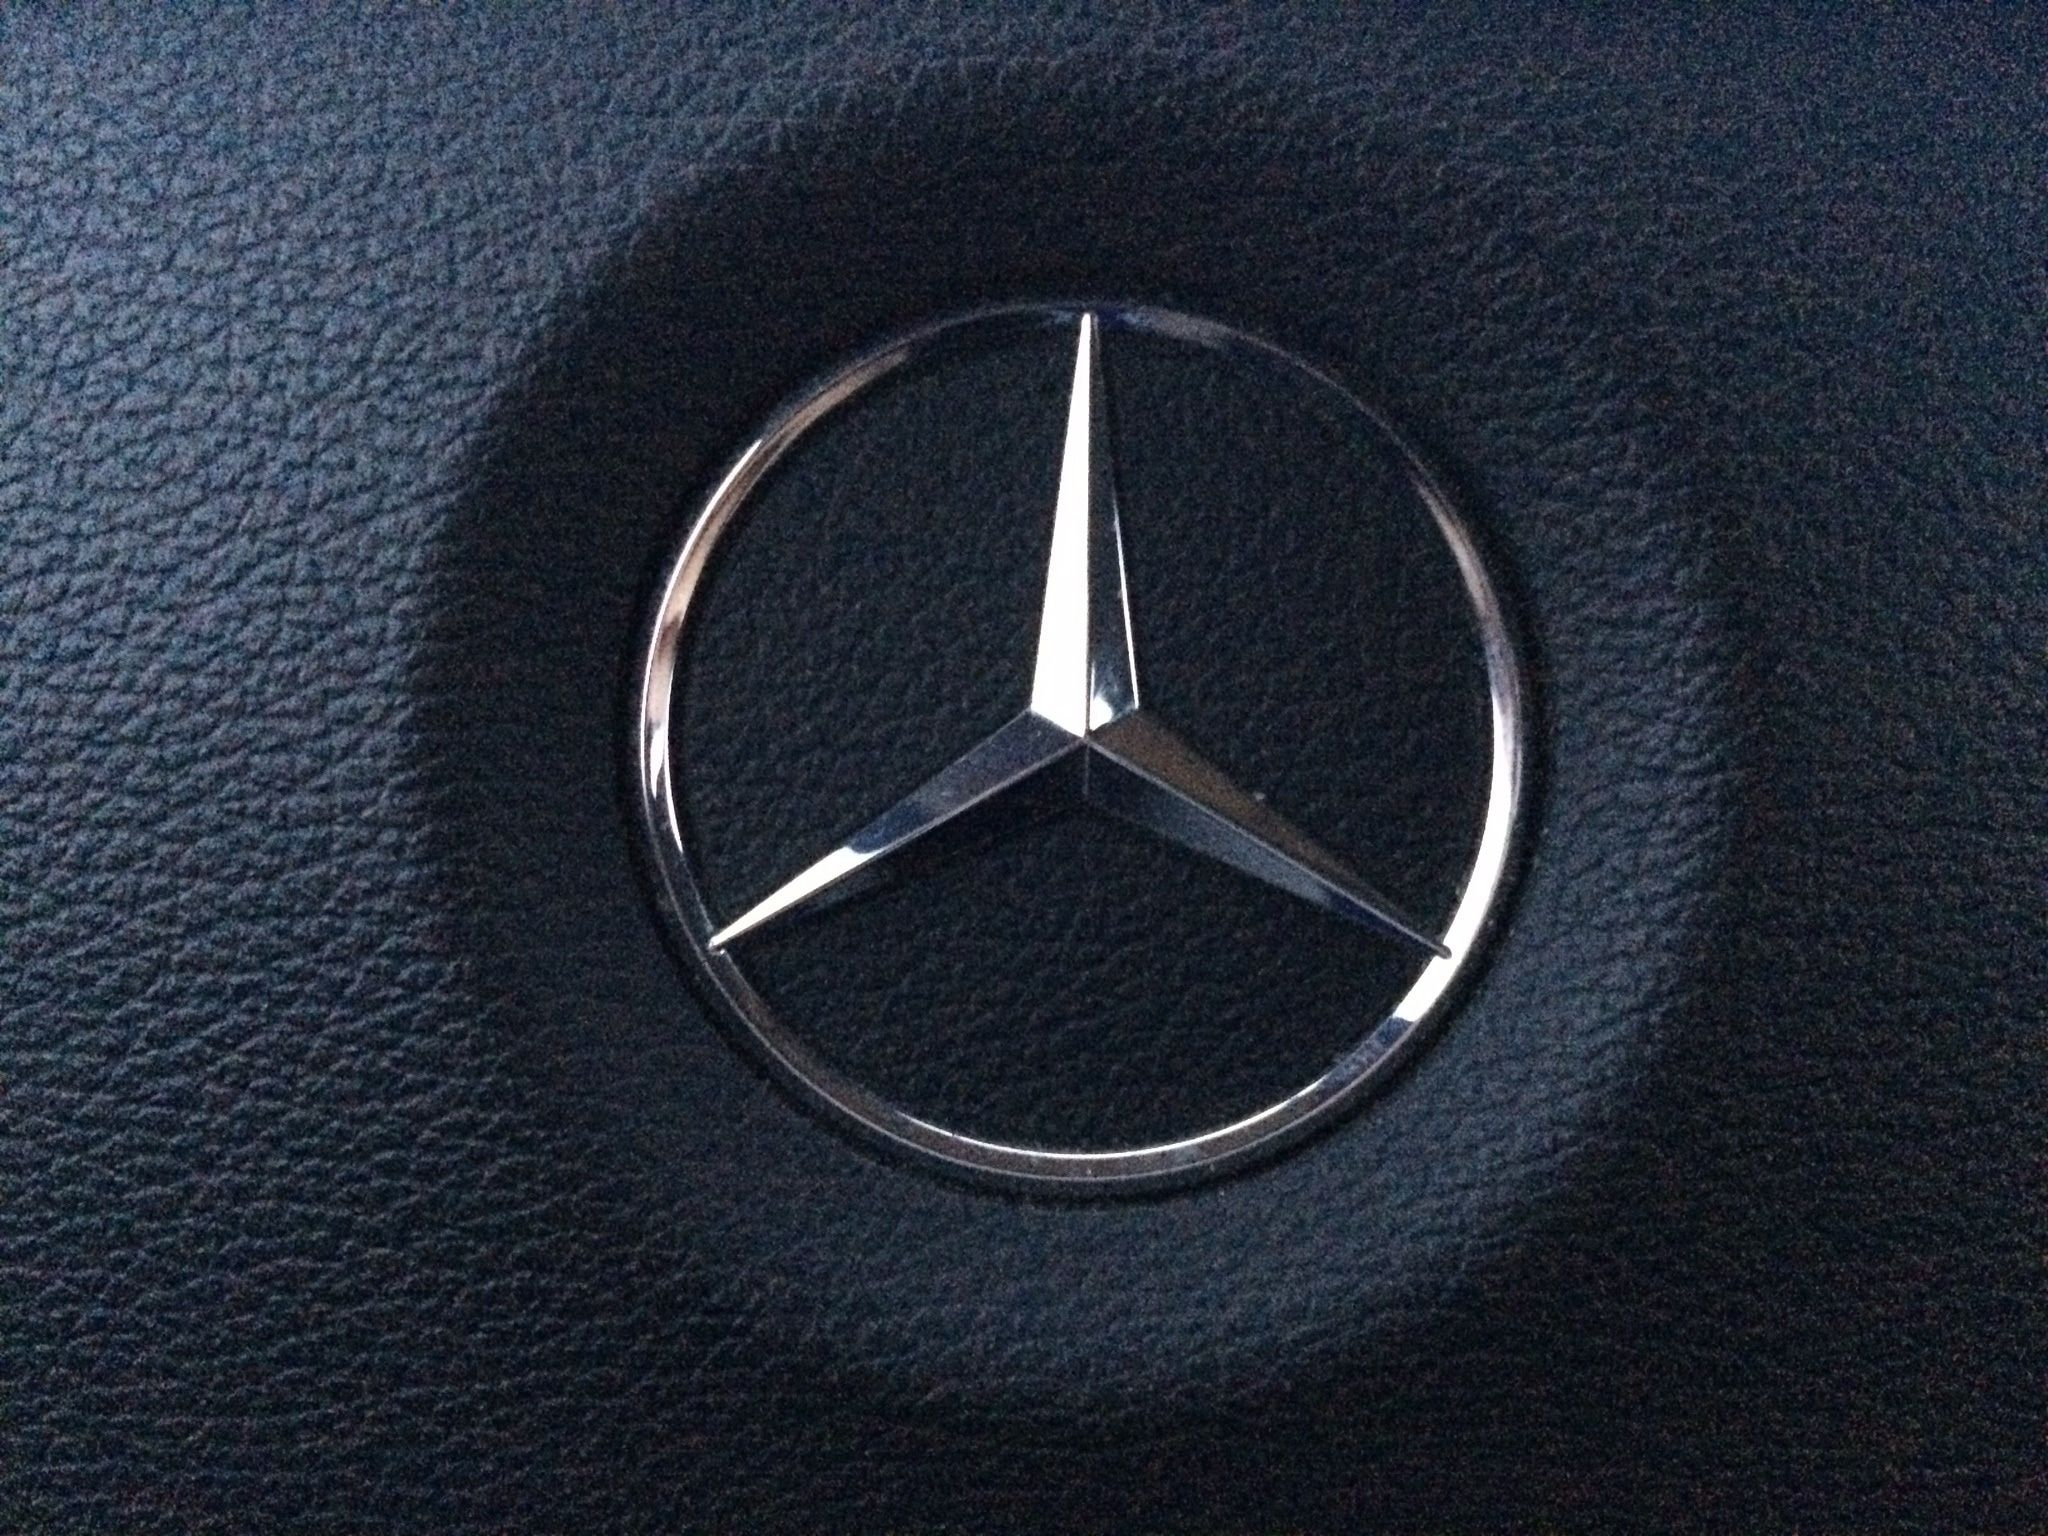 Mercedes Logo Wallpapers For Iphone On Wallpaper 1080p Hd